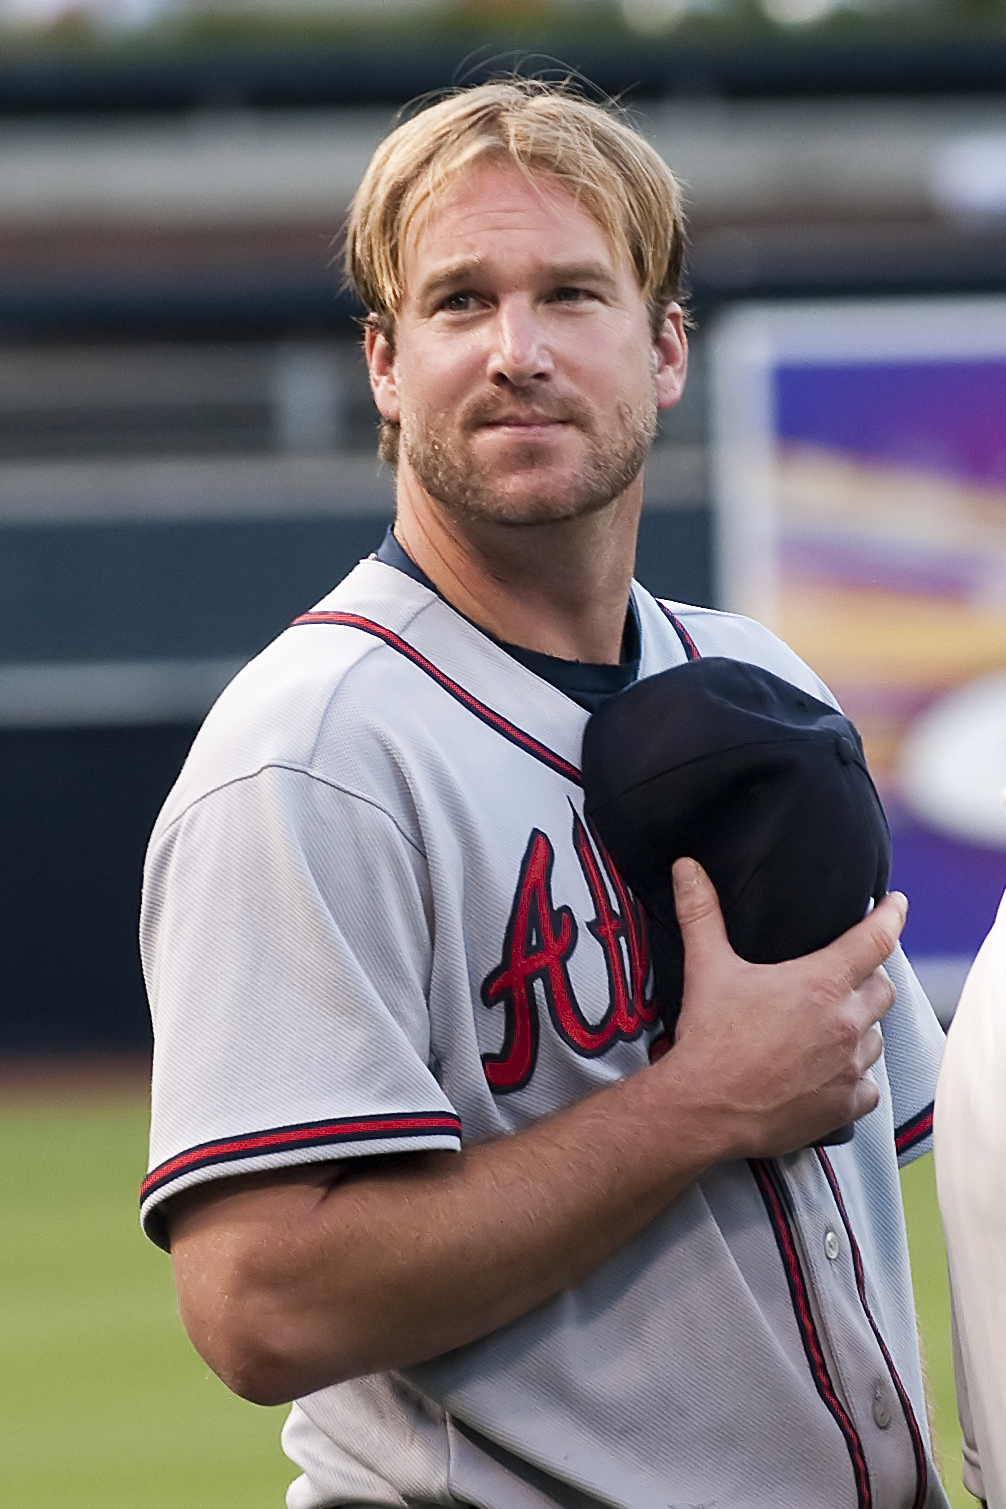 Lowe with the Atlanta Braves in 2009